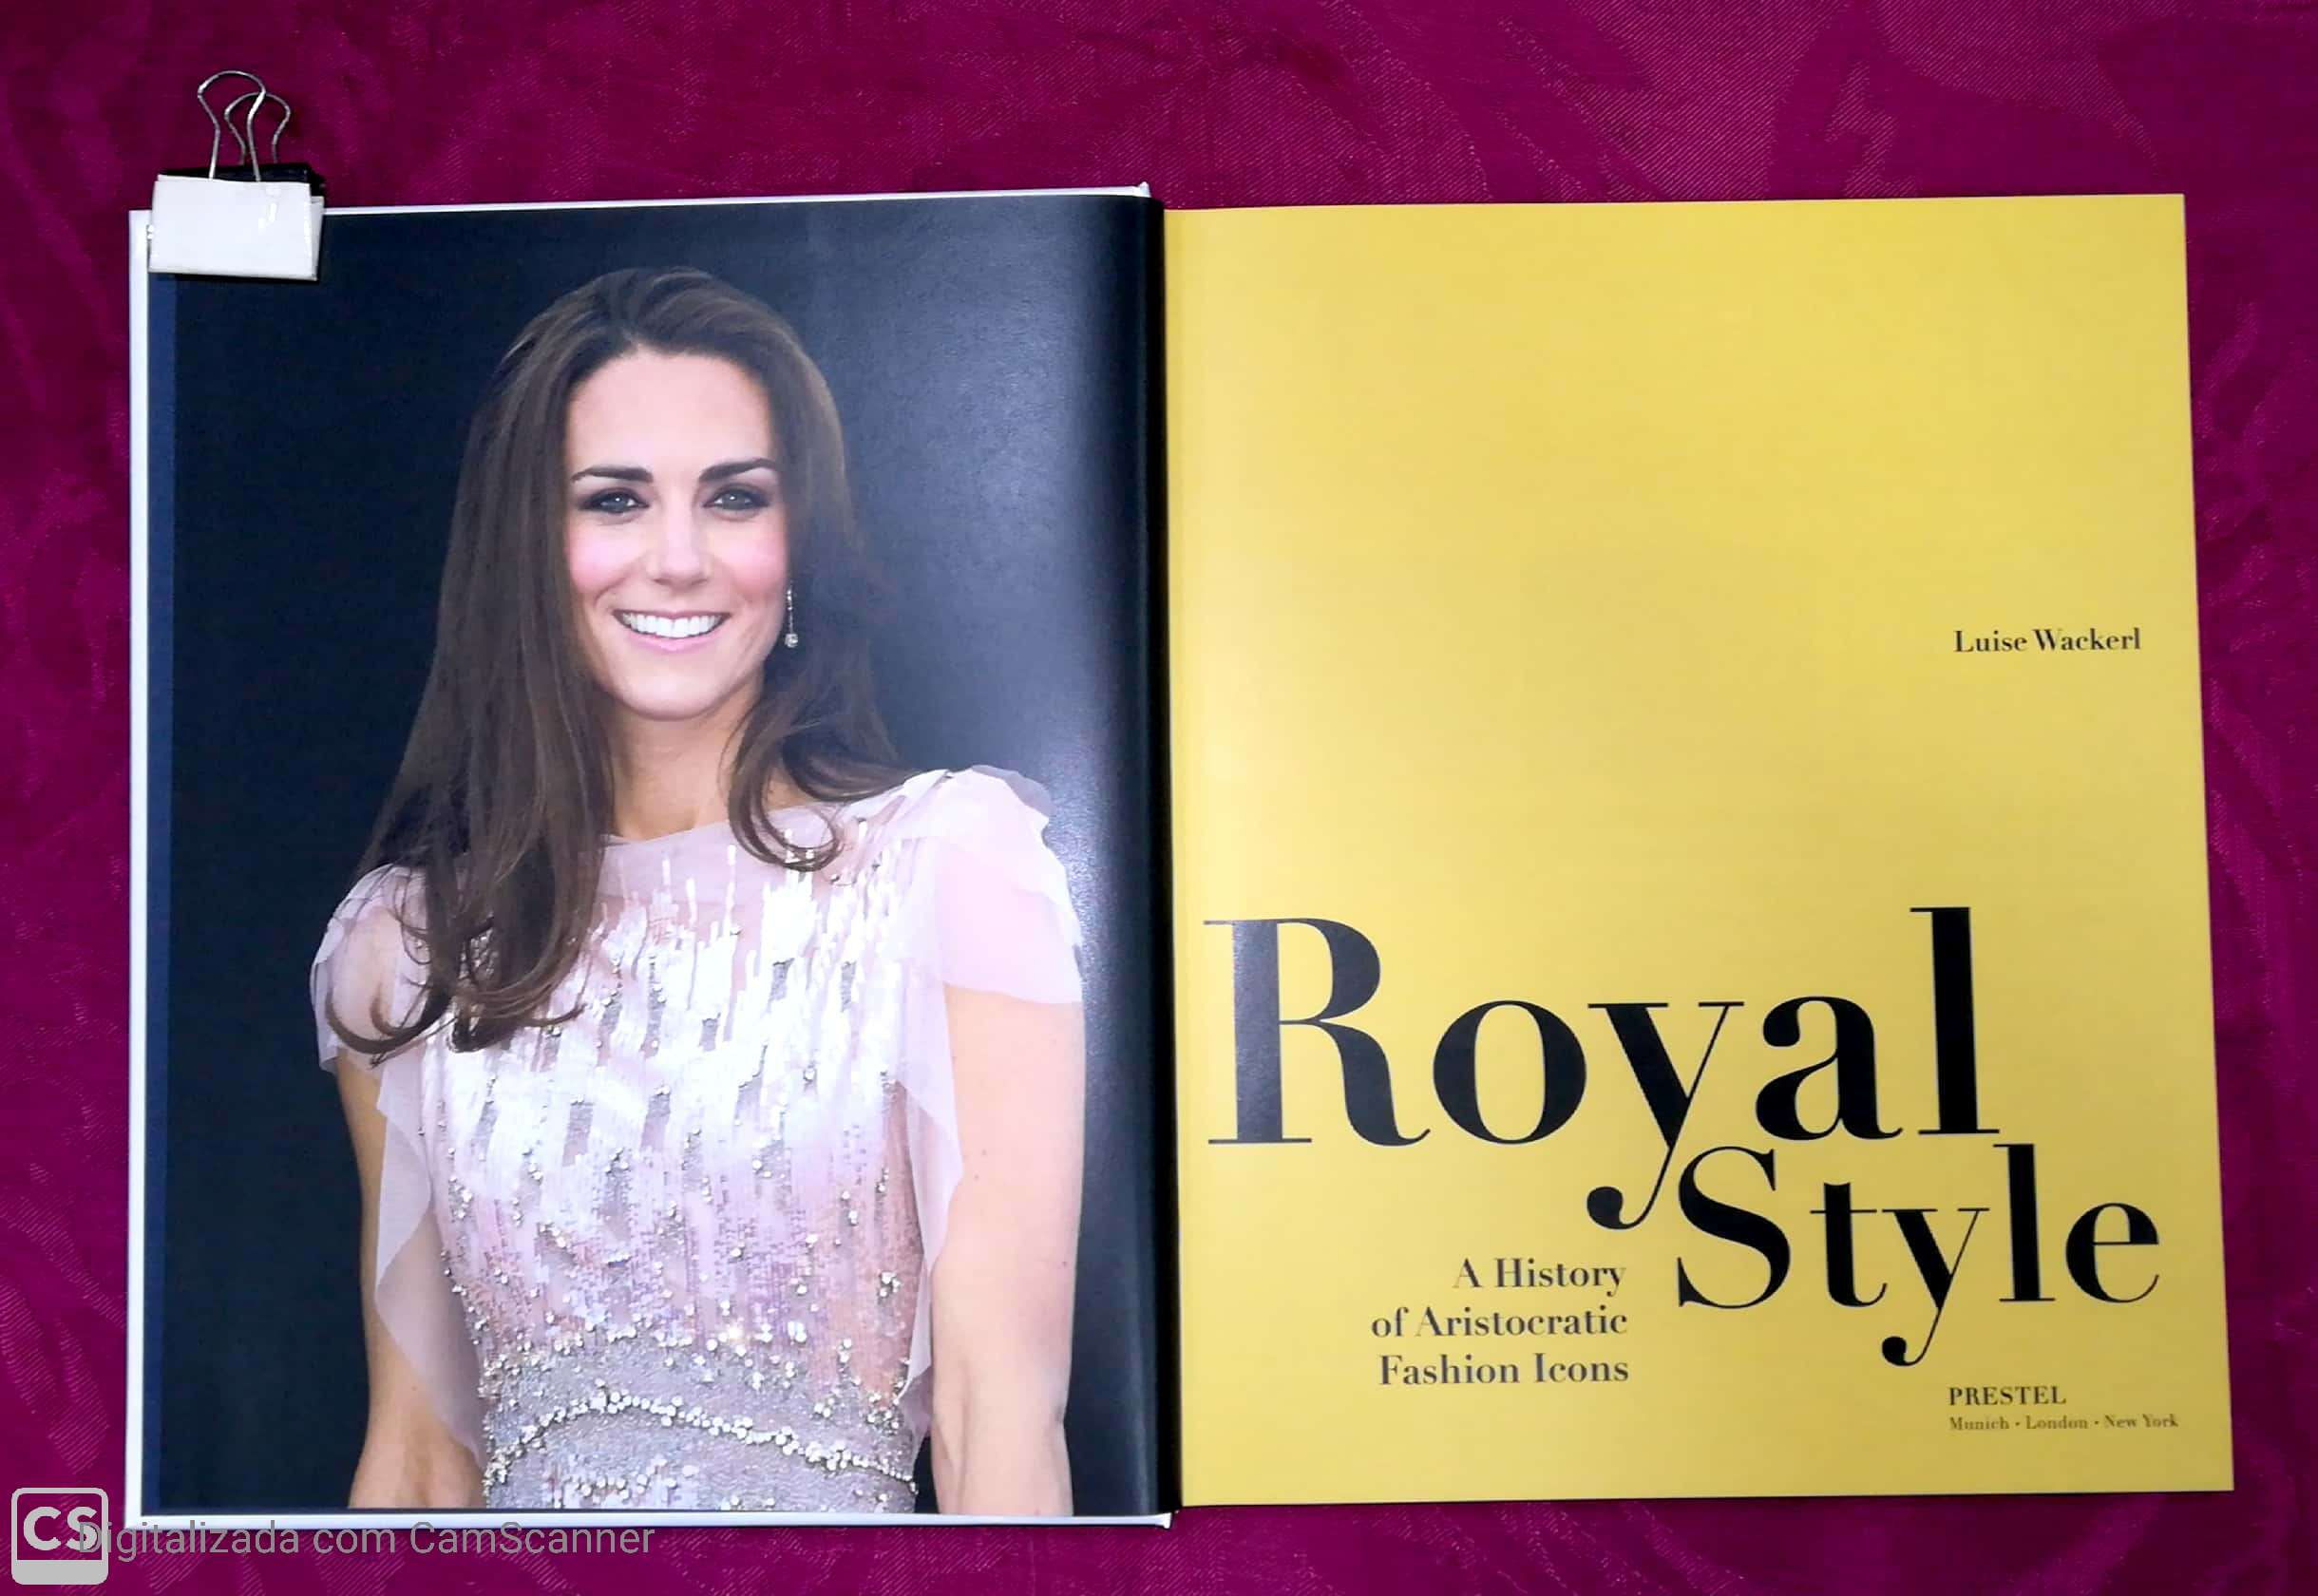 Royal Style. A History of Aristocratic Fashion Icons 6 (3)